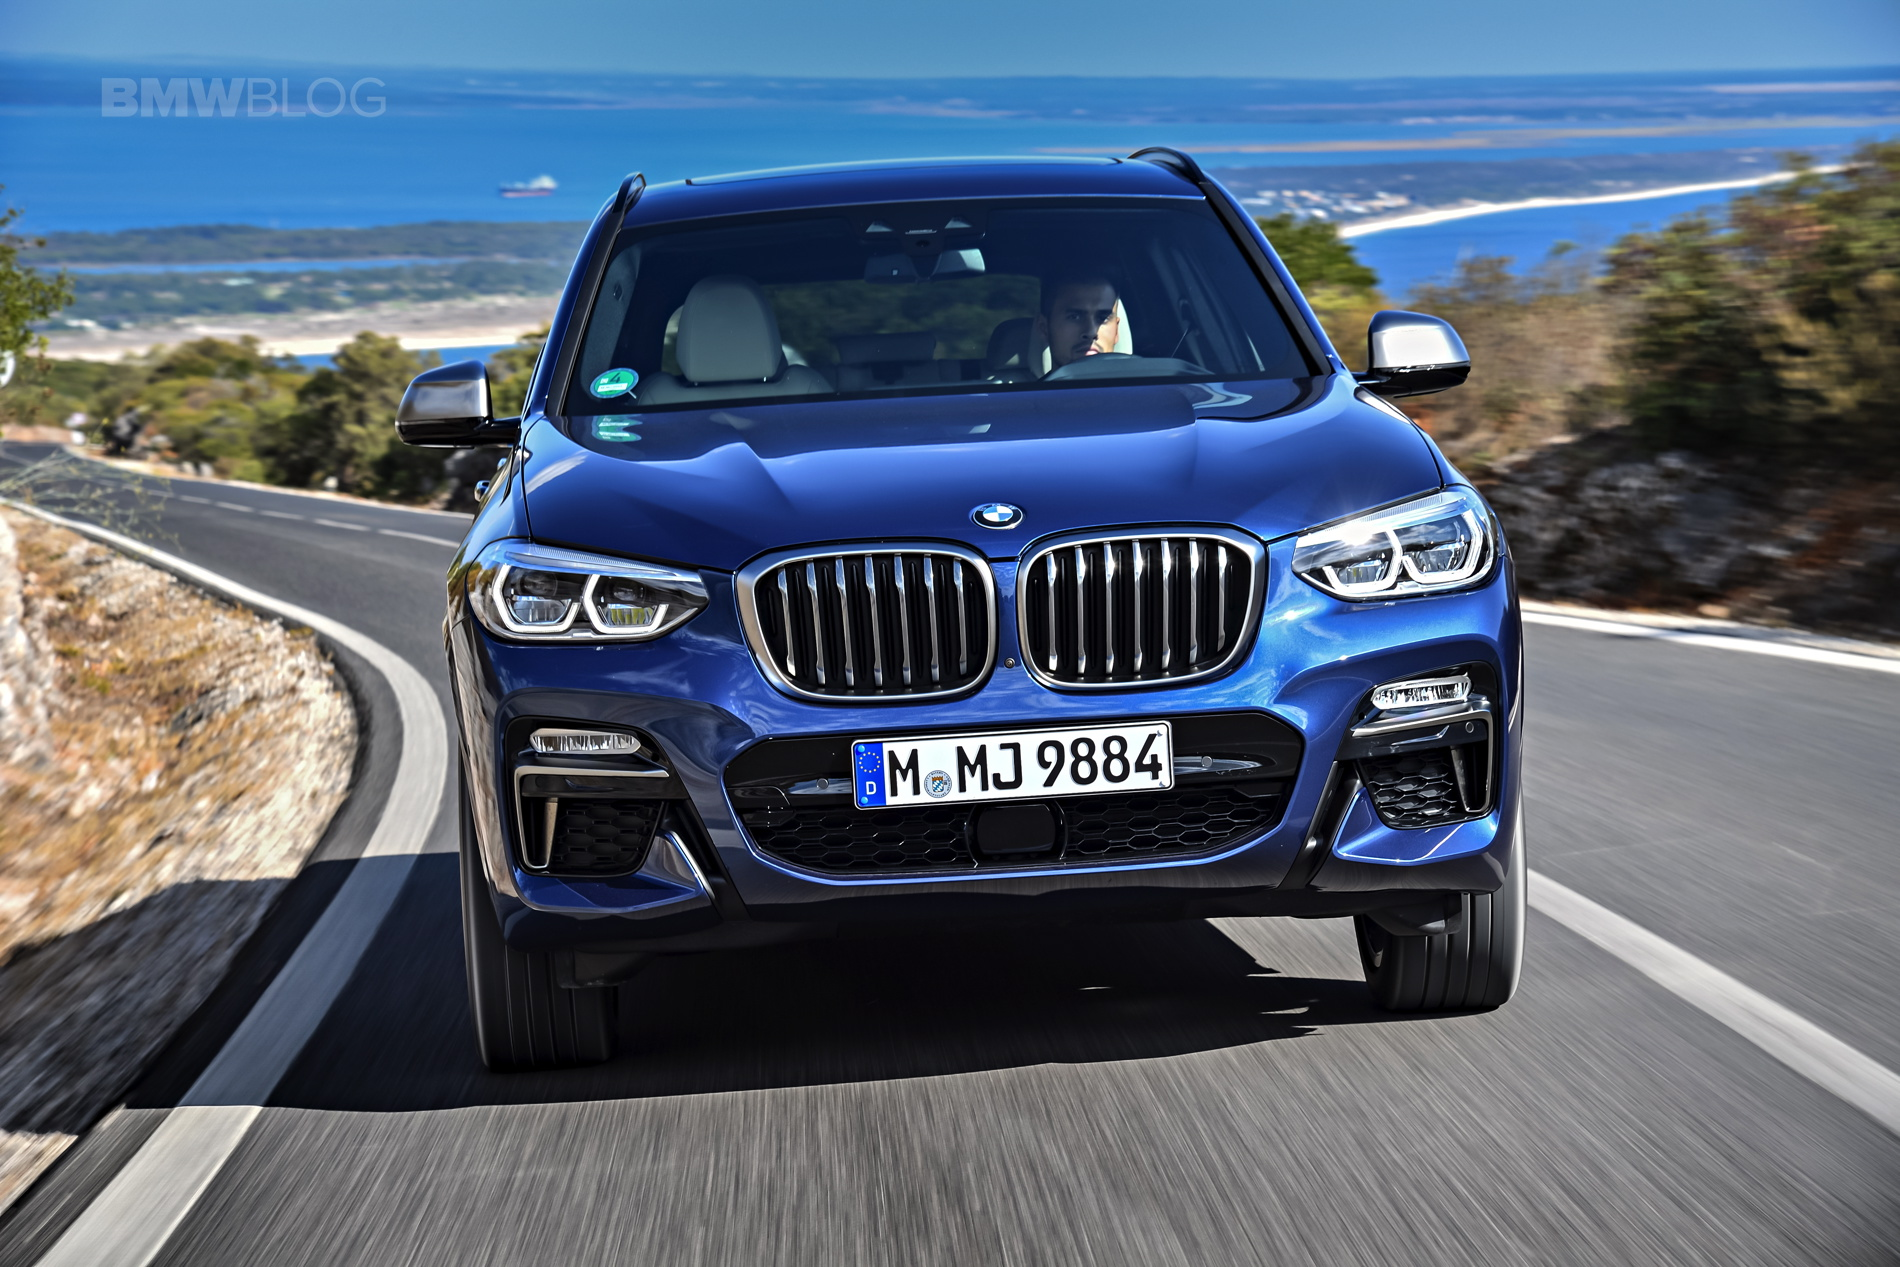 2018 BMW X3 M40i photoshoot 68